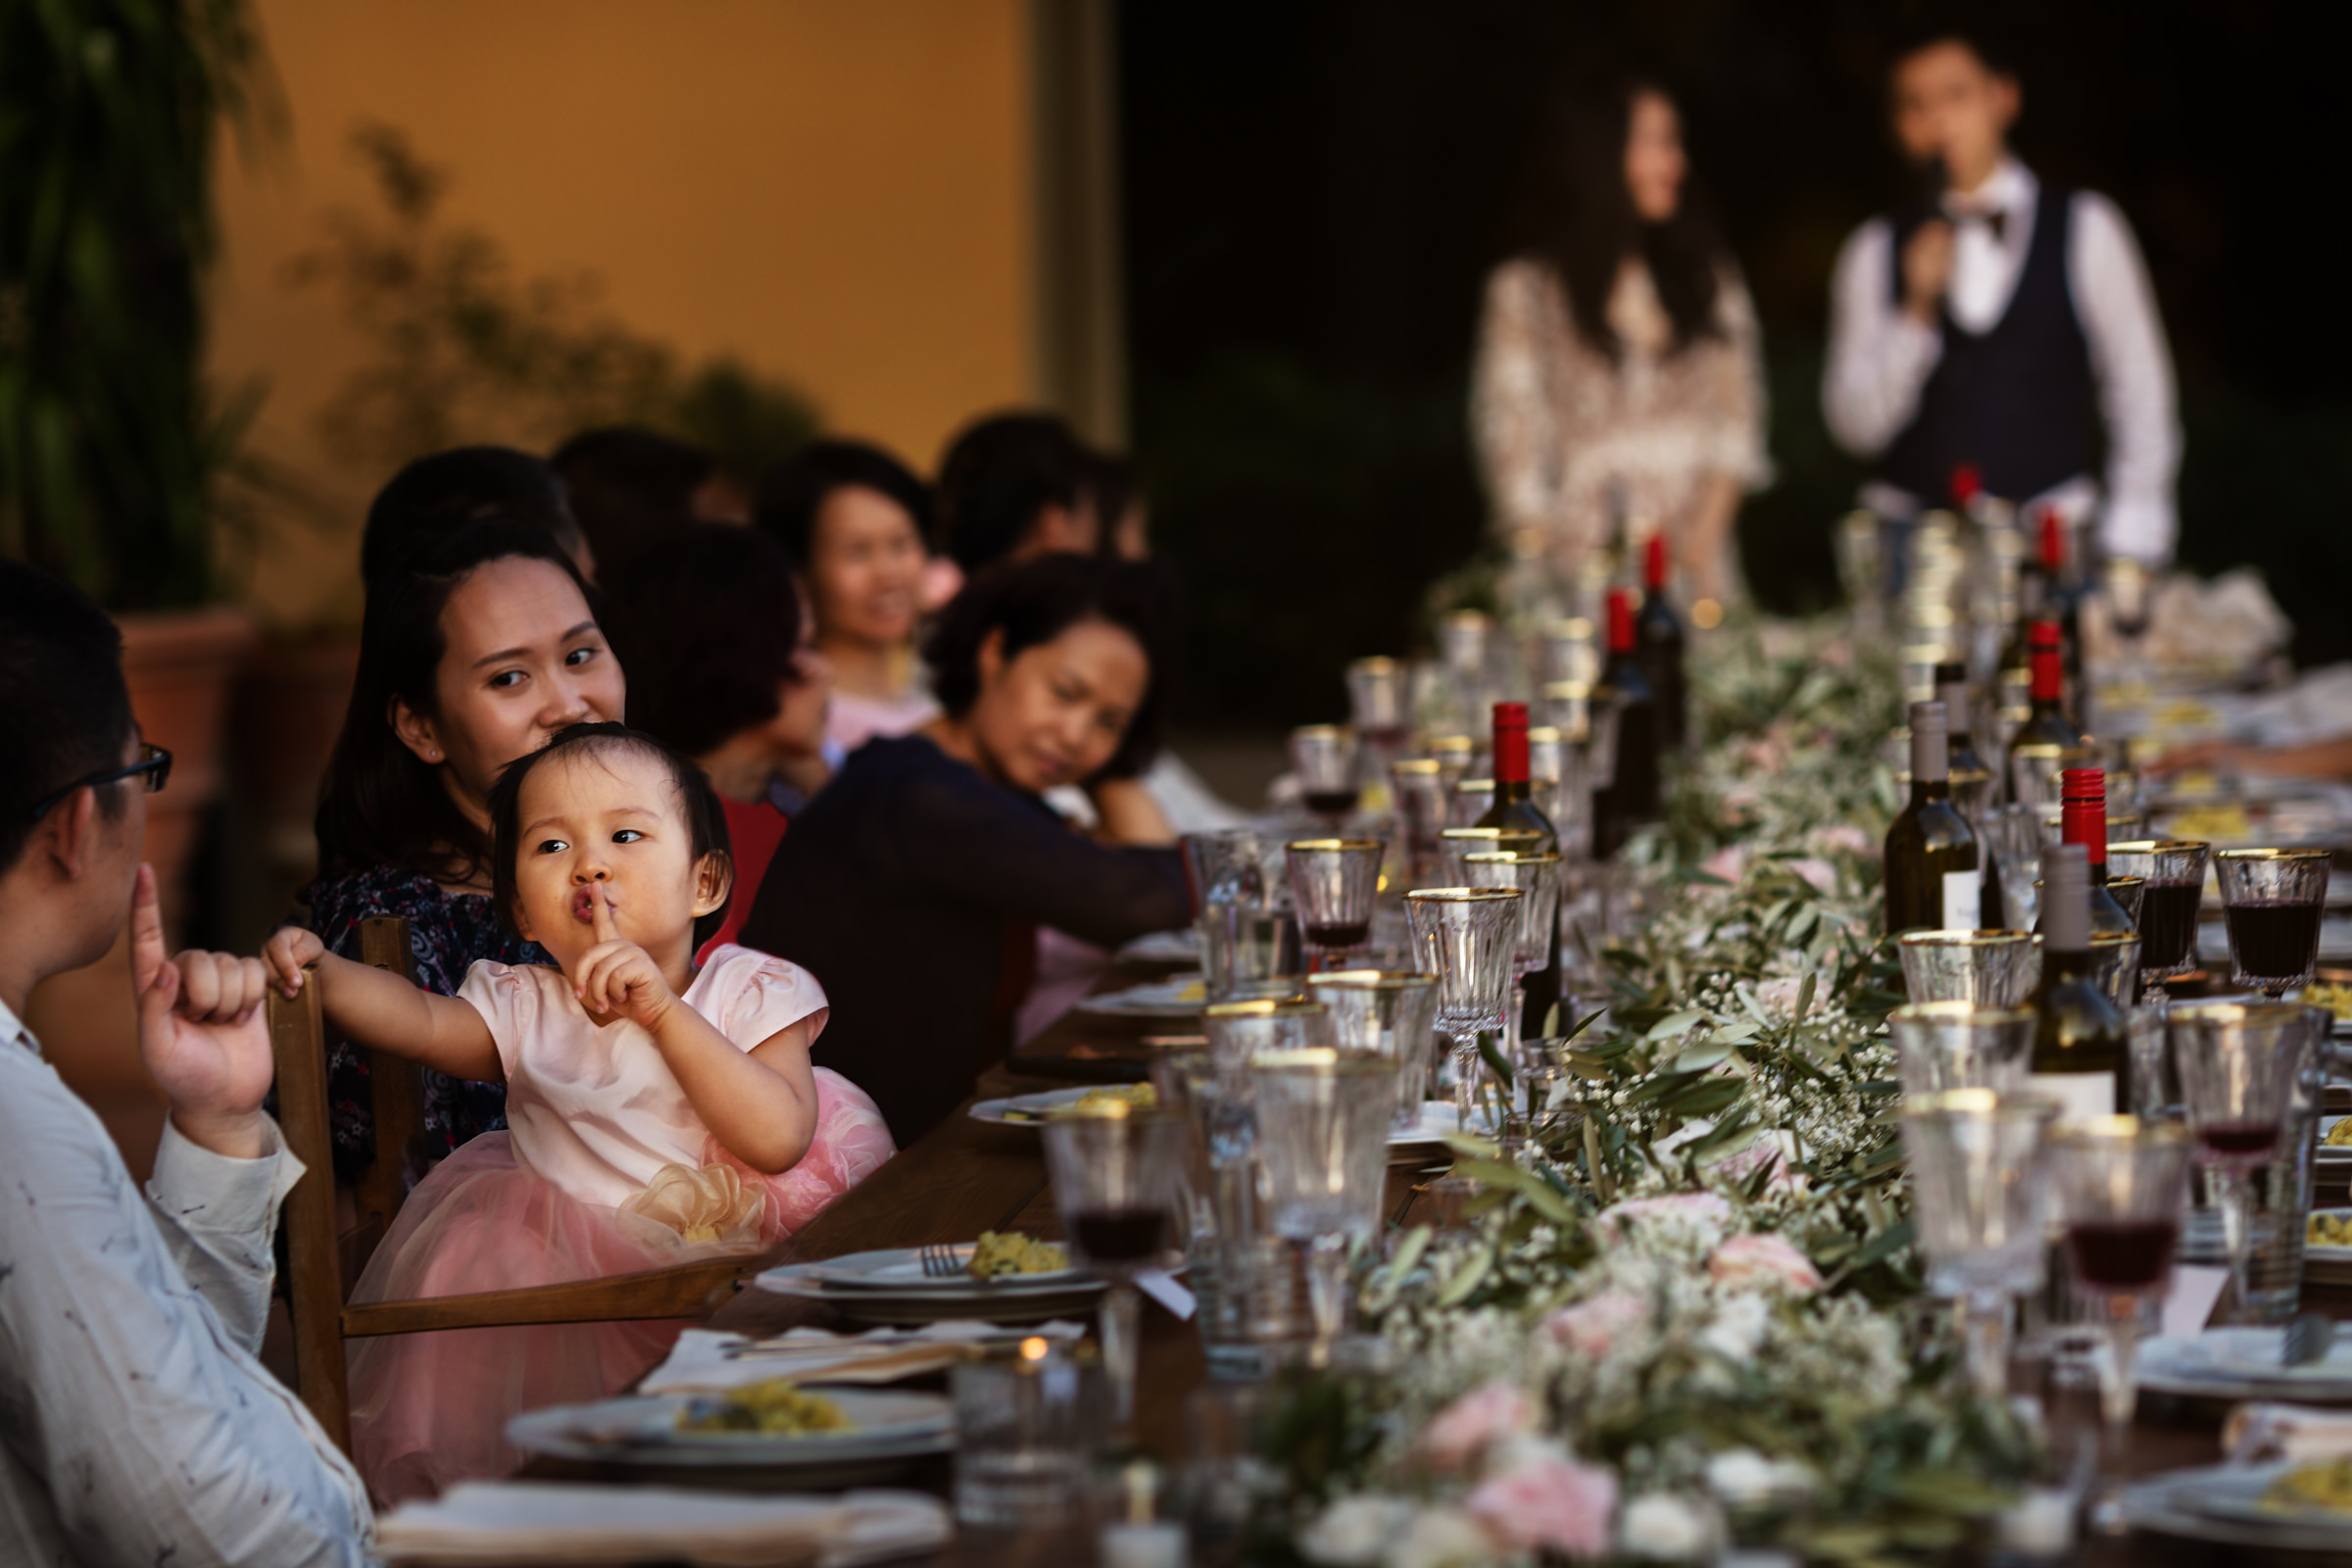 Sweet little girl at reception table - photo by D2 Photography